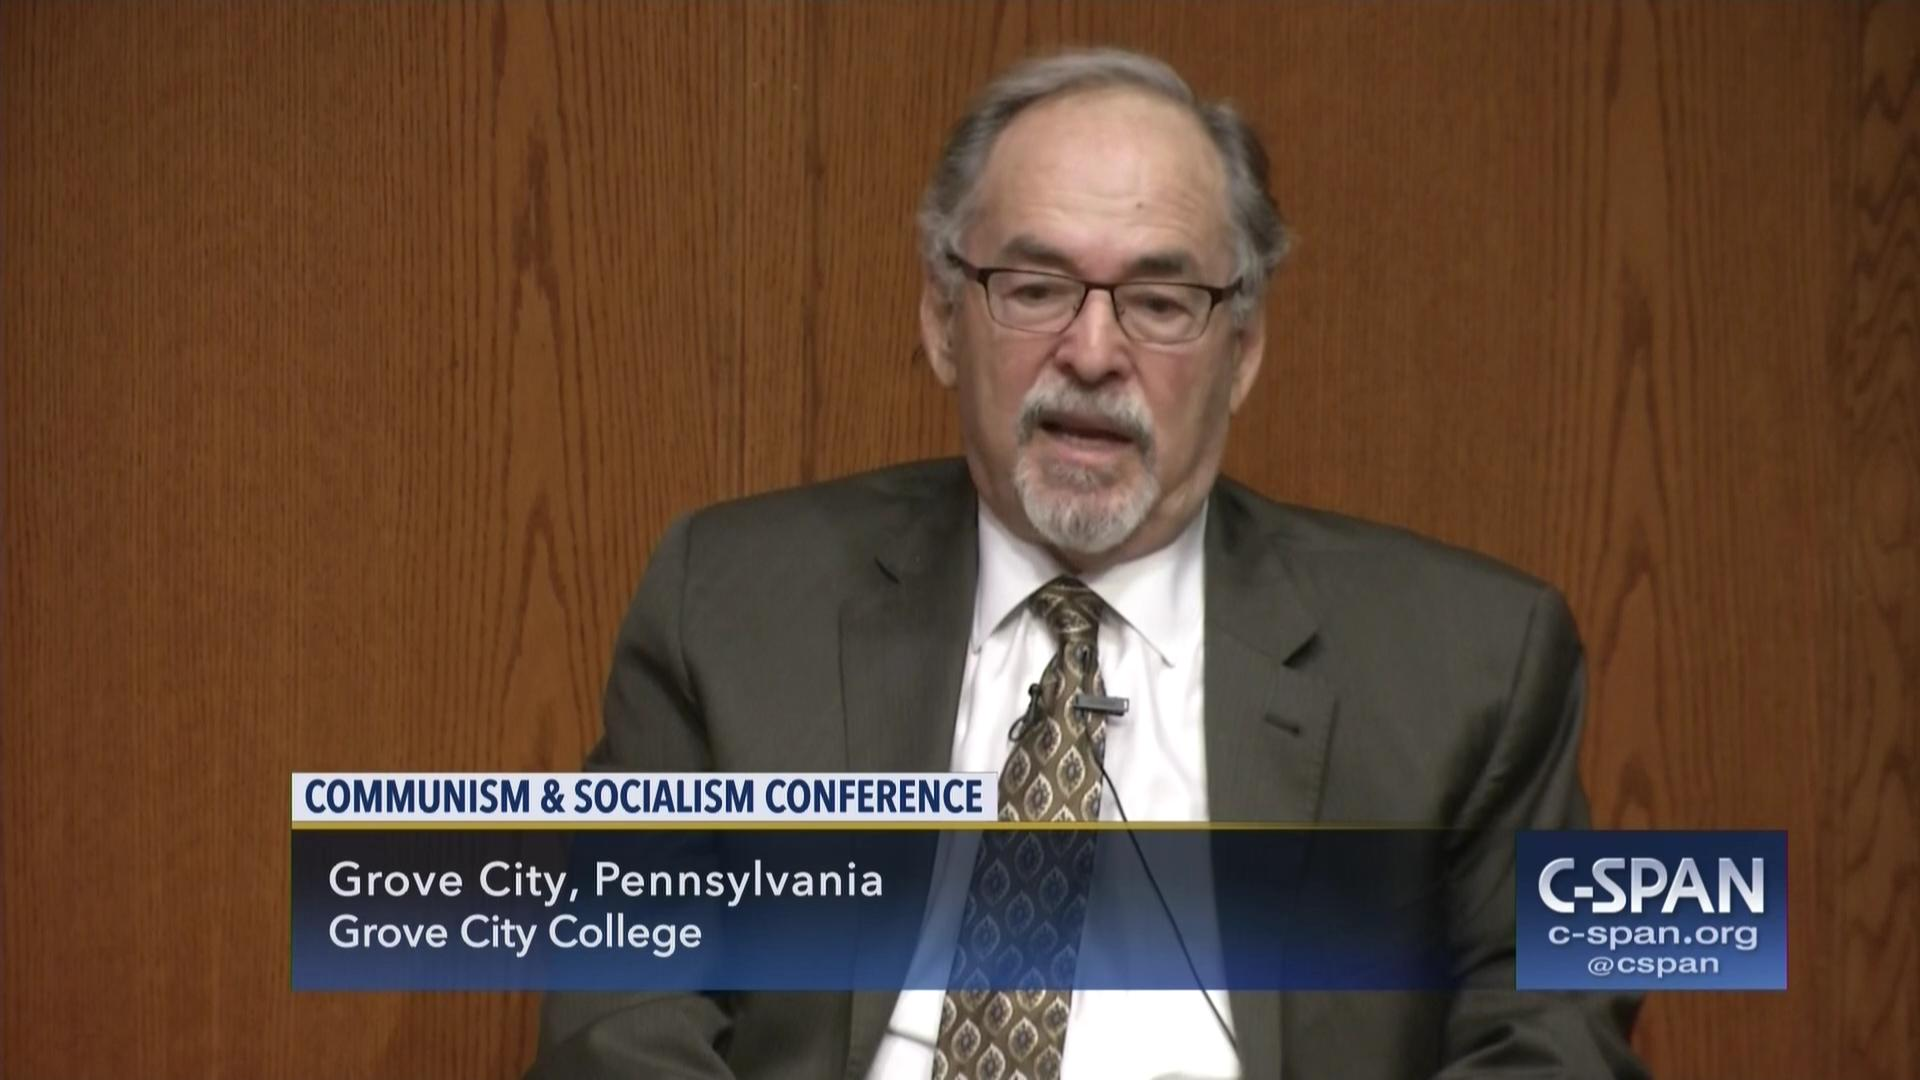 David Horowitz Talked About The History Of Themunist Party, Socialism,  Conservatism And Liberalism